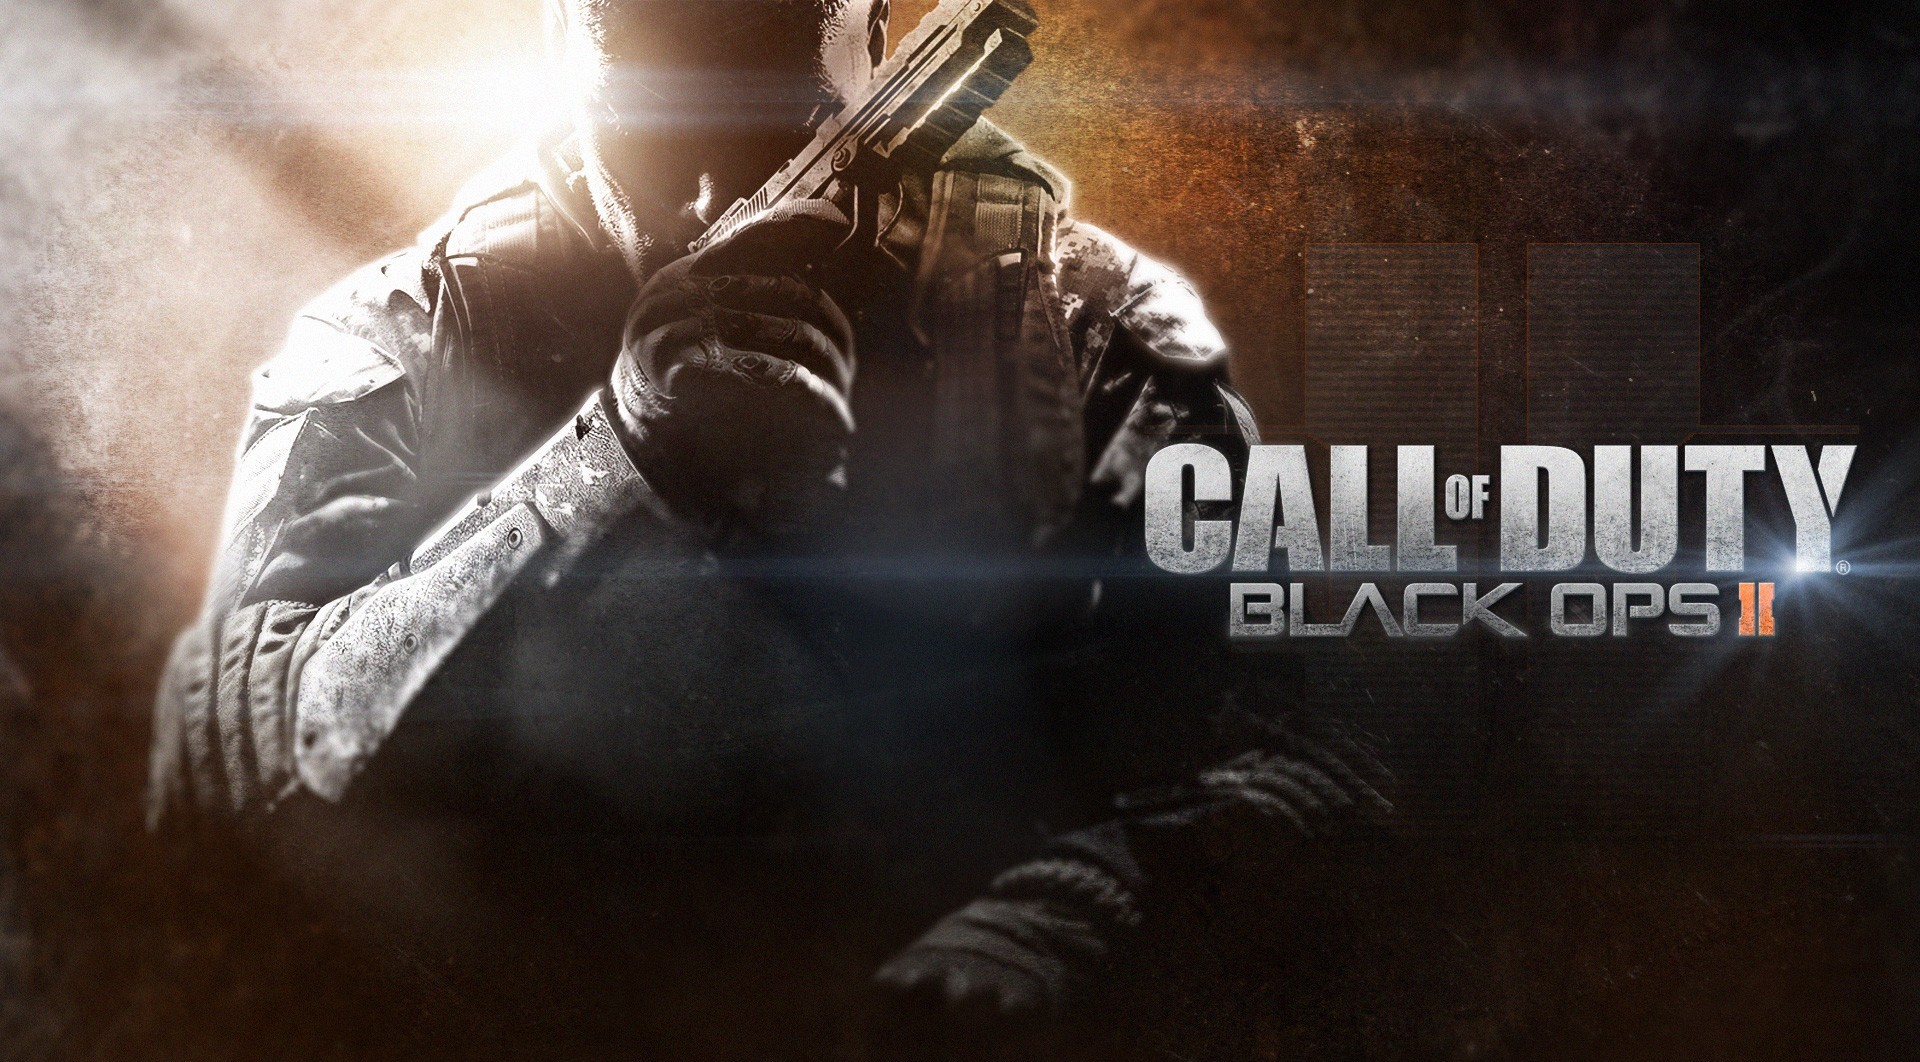 Call of Duty: Black Ops II enters NPD's top 10 charts due to backward compatibility 1